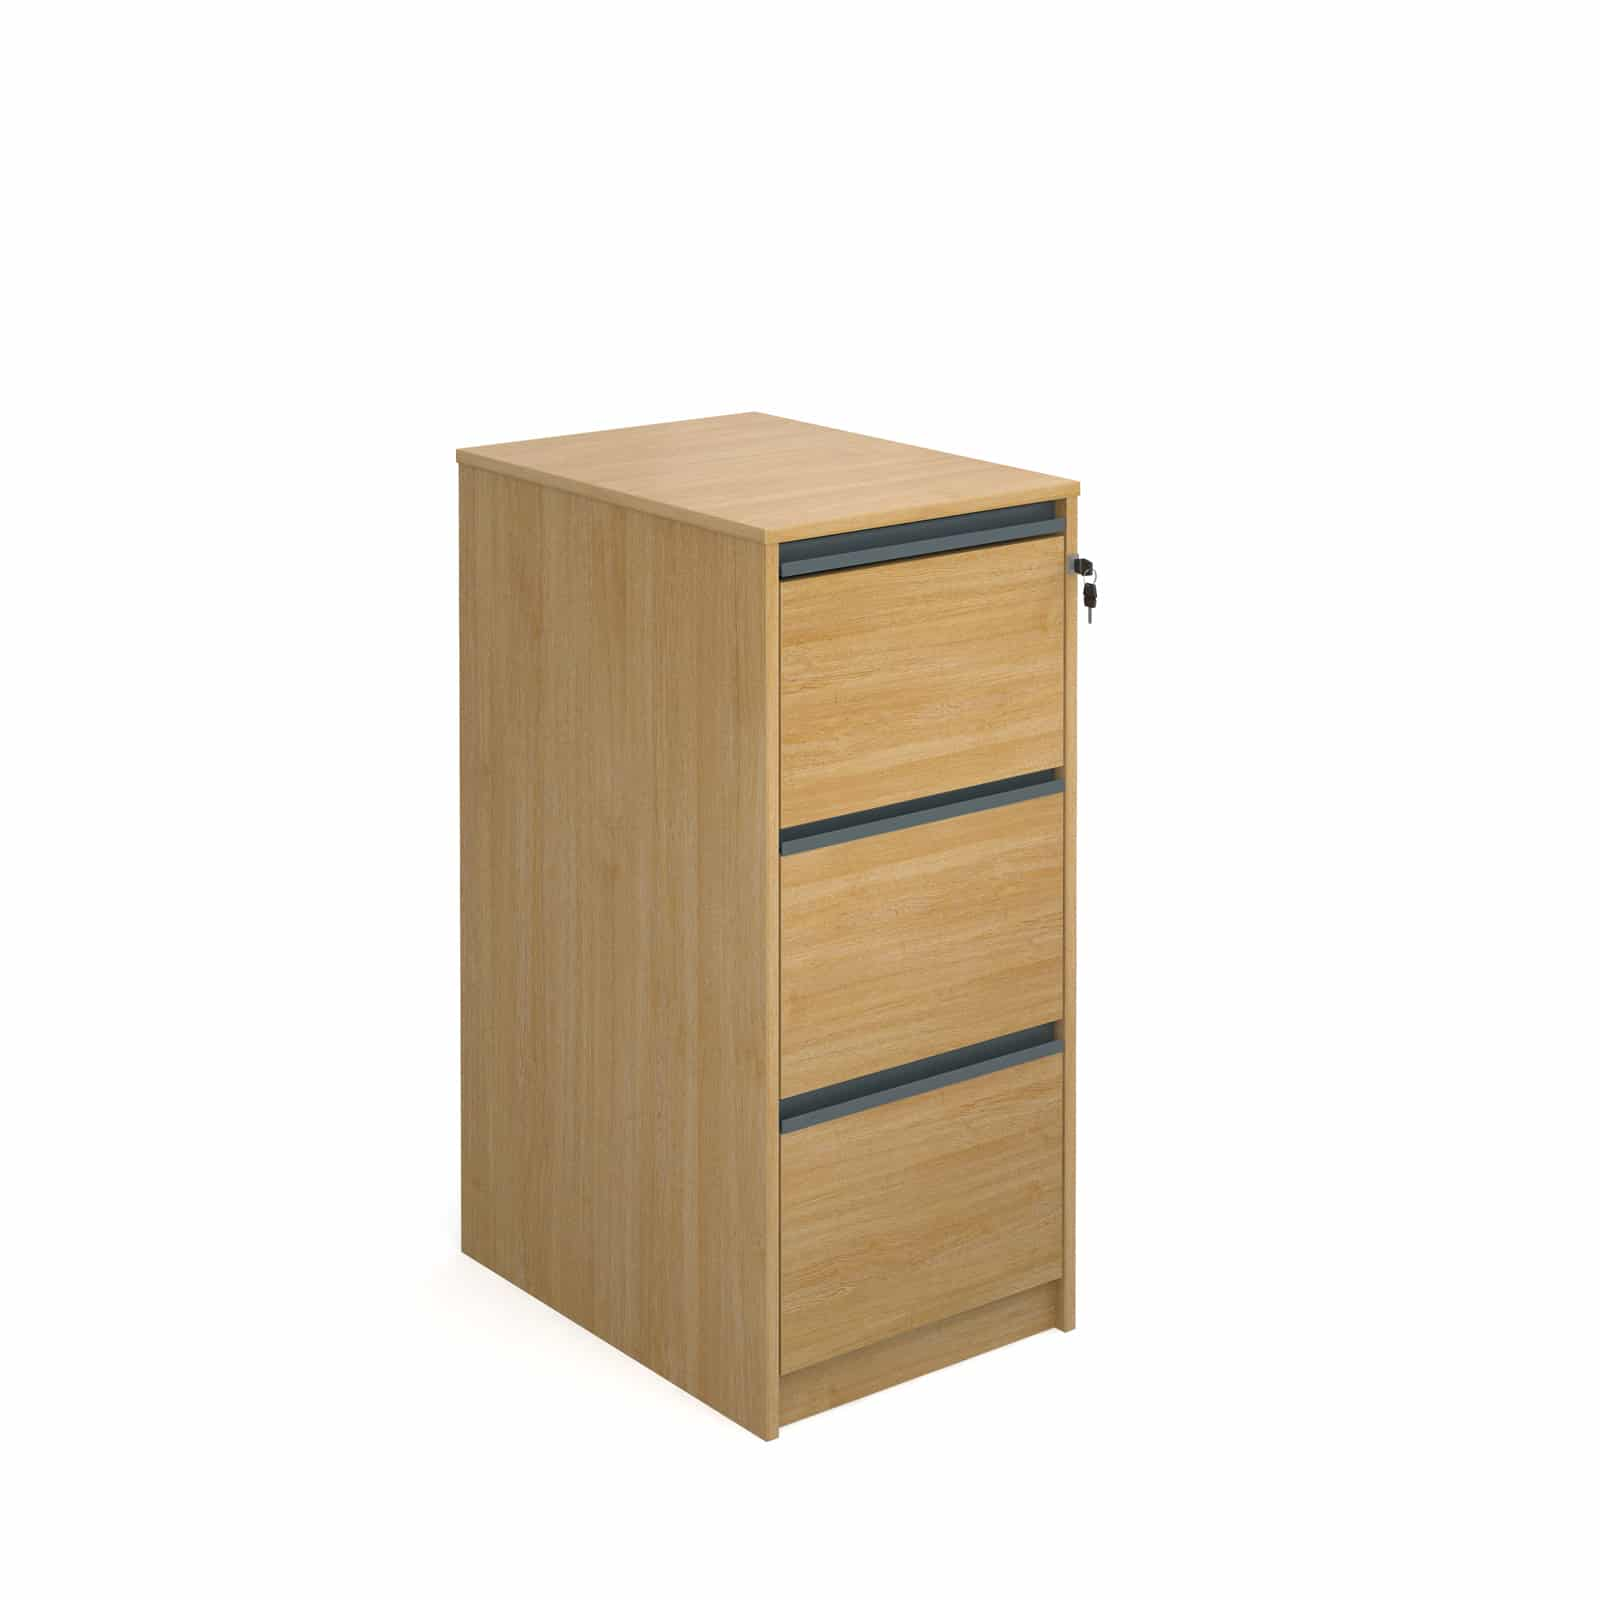 Universal Ready Built 3 Draw Wood Office Furniture Tough Filing Cabinet Oak